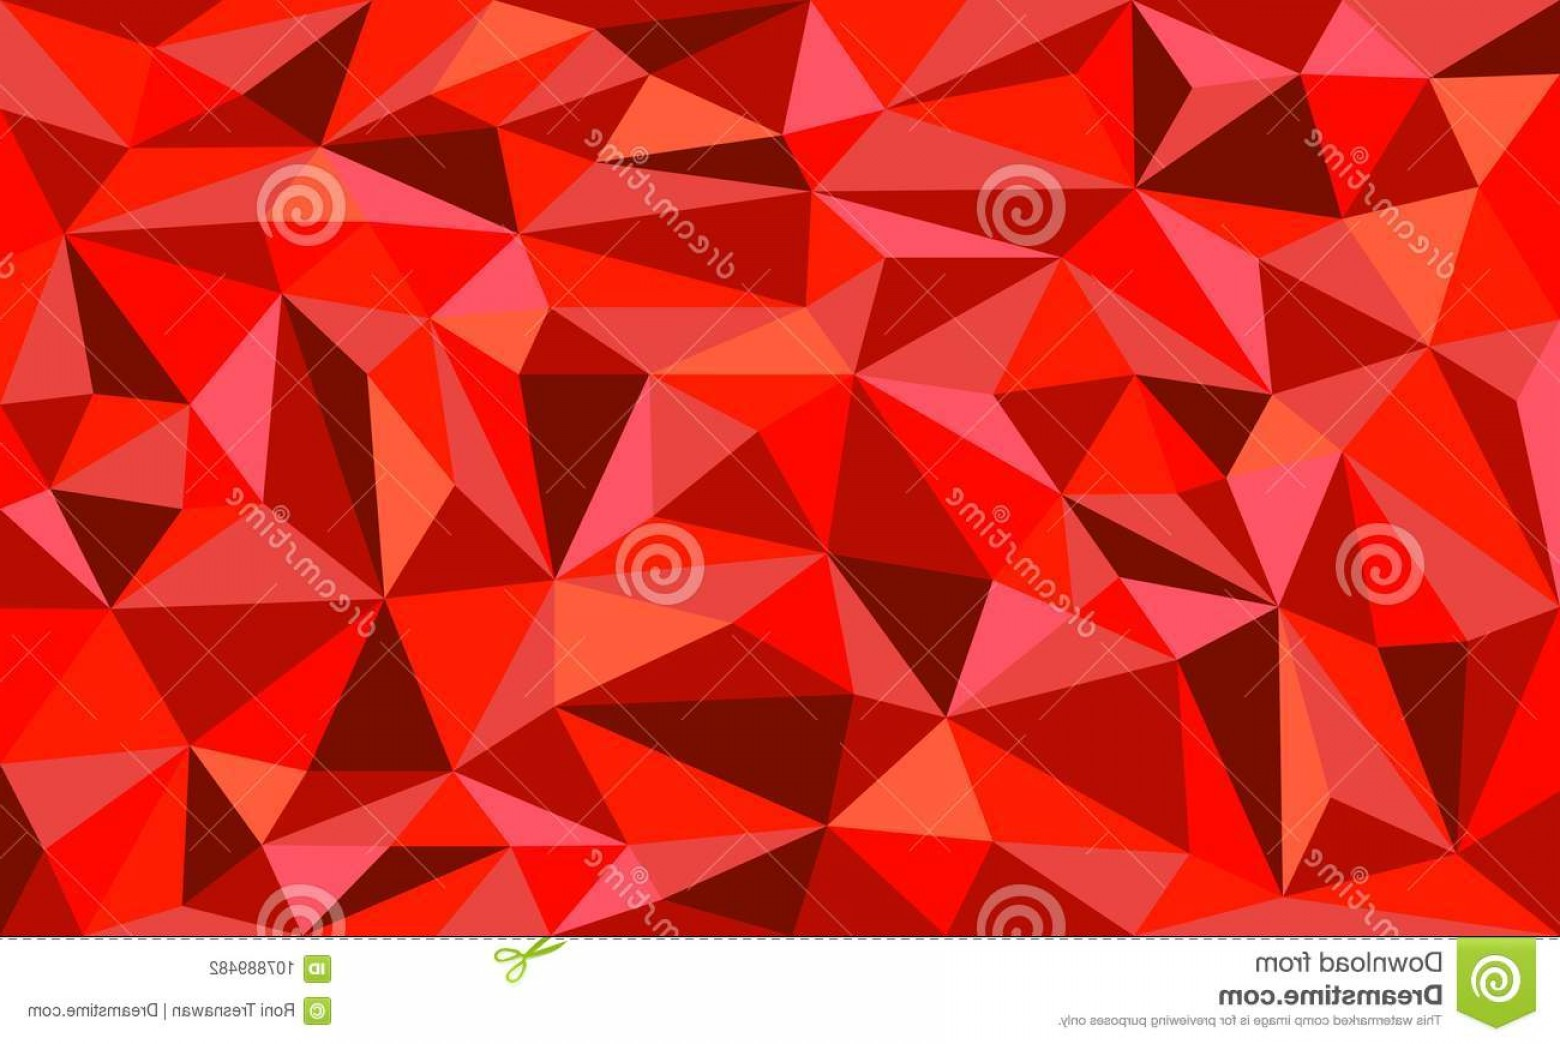 Ruby Royalty Free Vector Graphics: Red Ruby Low Poly Art Vector Graphic Background Red Ruby Low Poly Art Vector Graphic Background Design Image